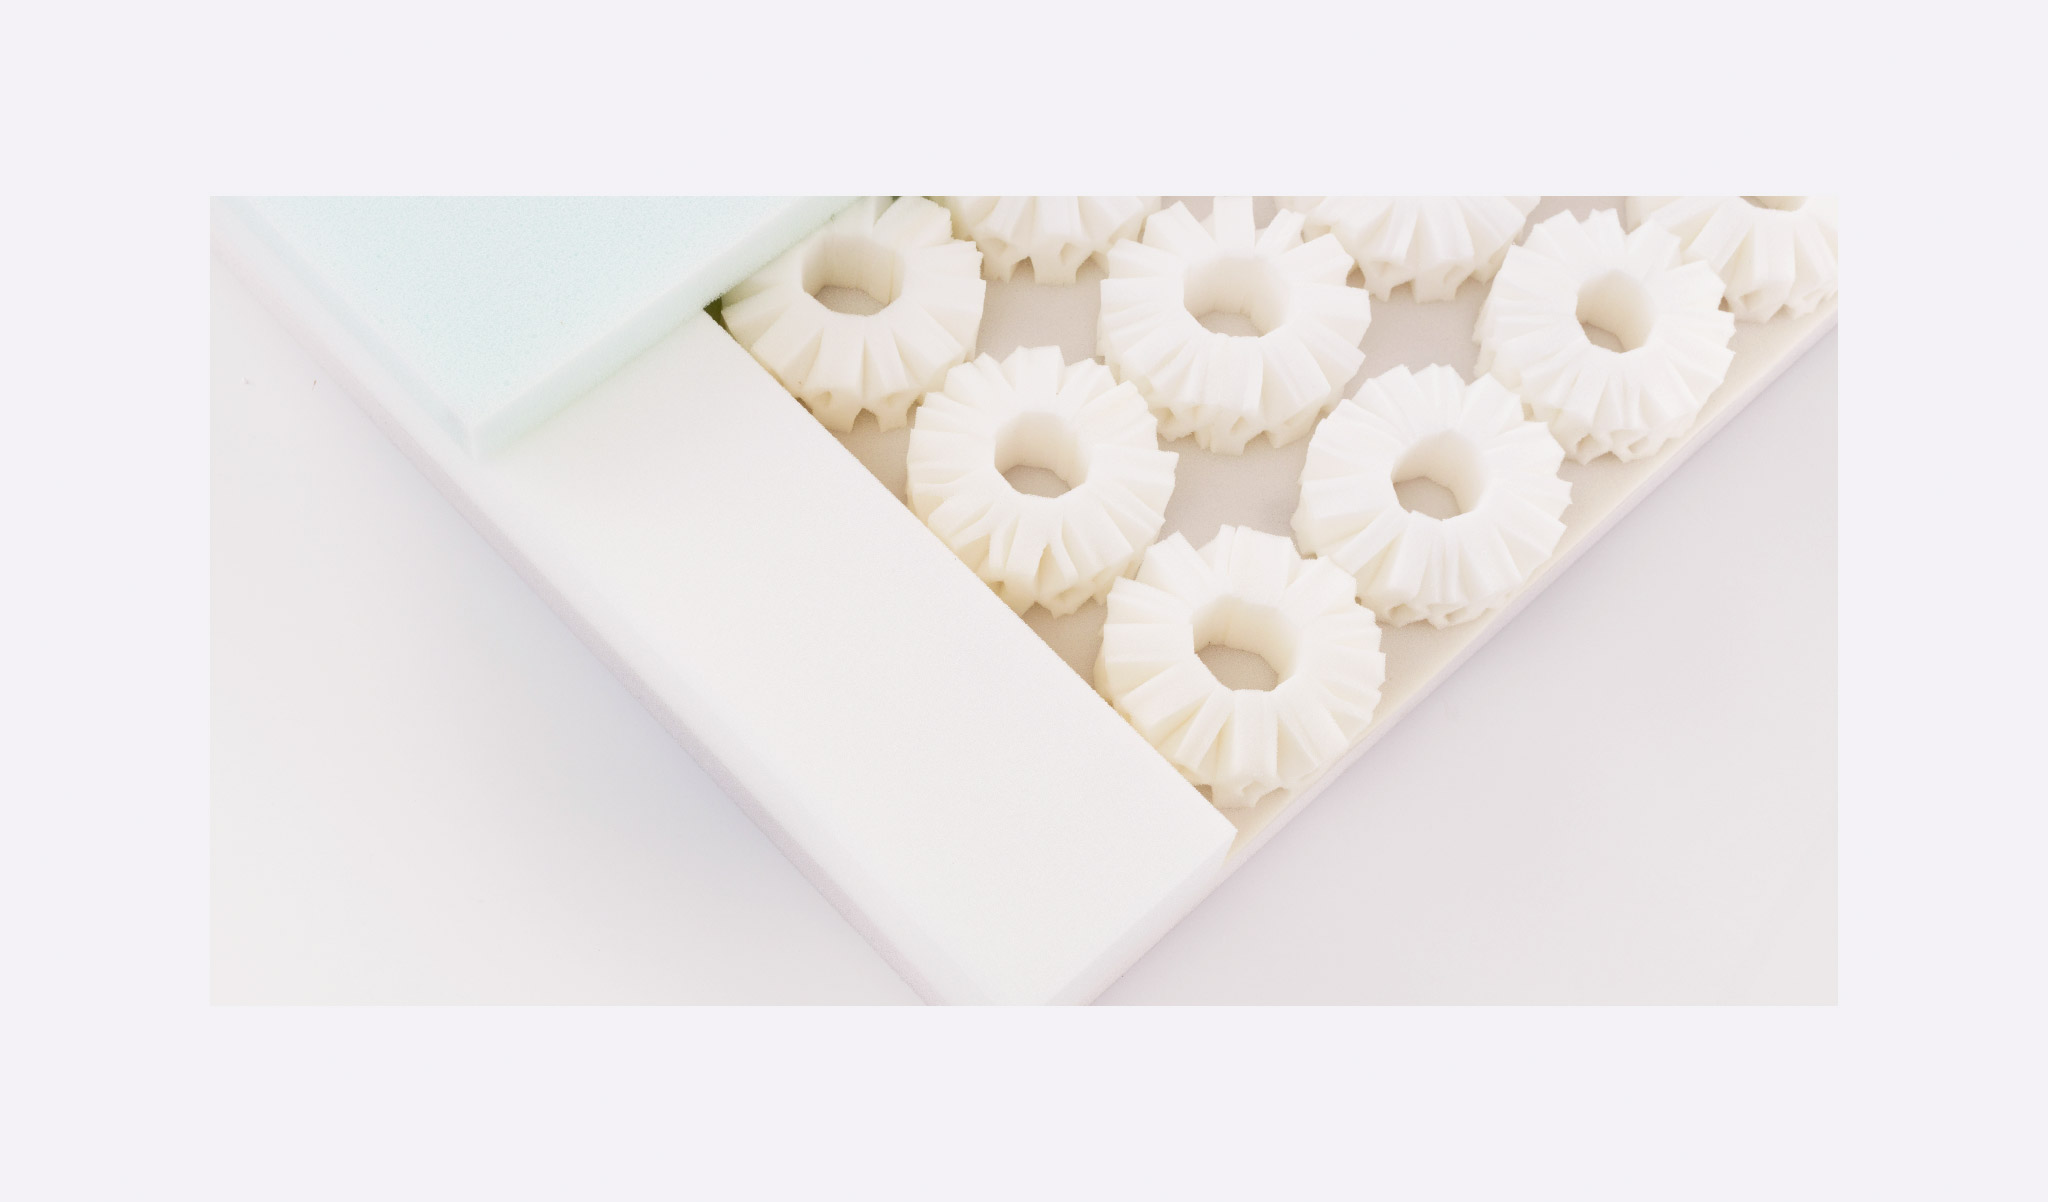 T015351 - Octasmart mattress